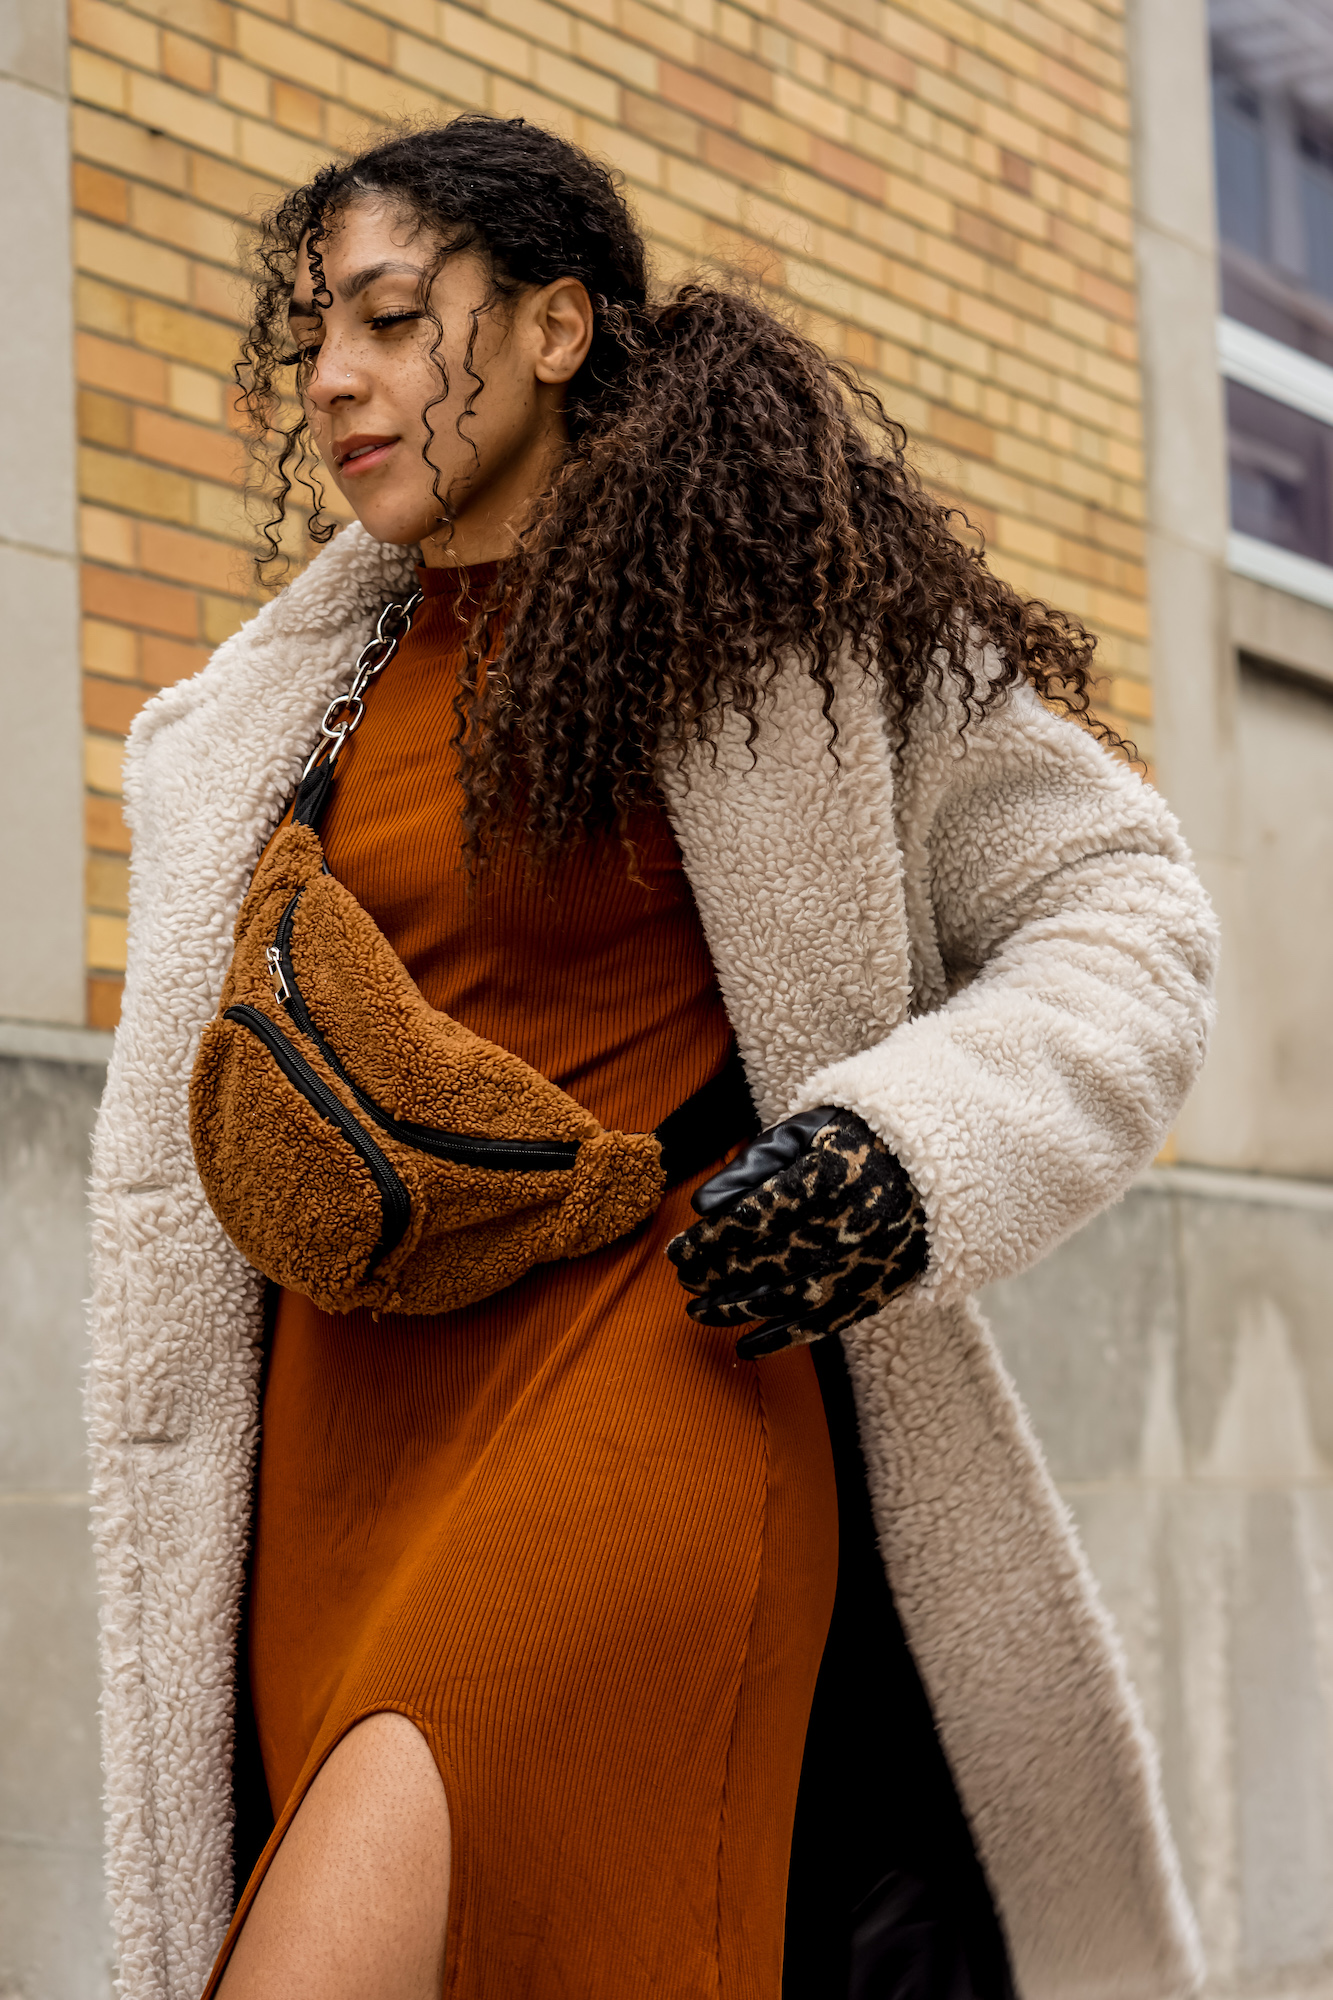 fashion blogger style outfits, fall outfits women 20s style inspiration color combos, latest fashion trends for women what to wear teddy bear coat, cute shoes for women, fall outfits women casual fashion ideas street styles